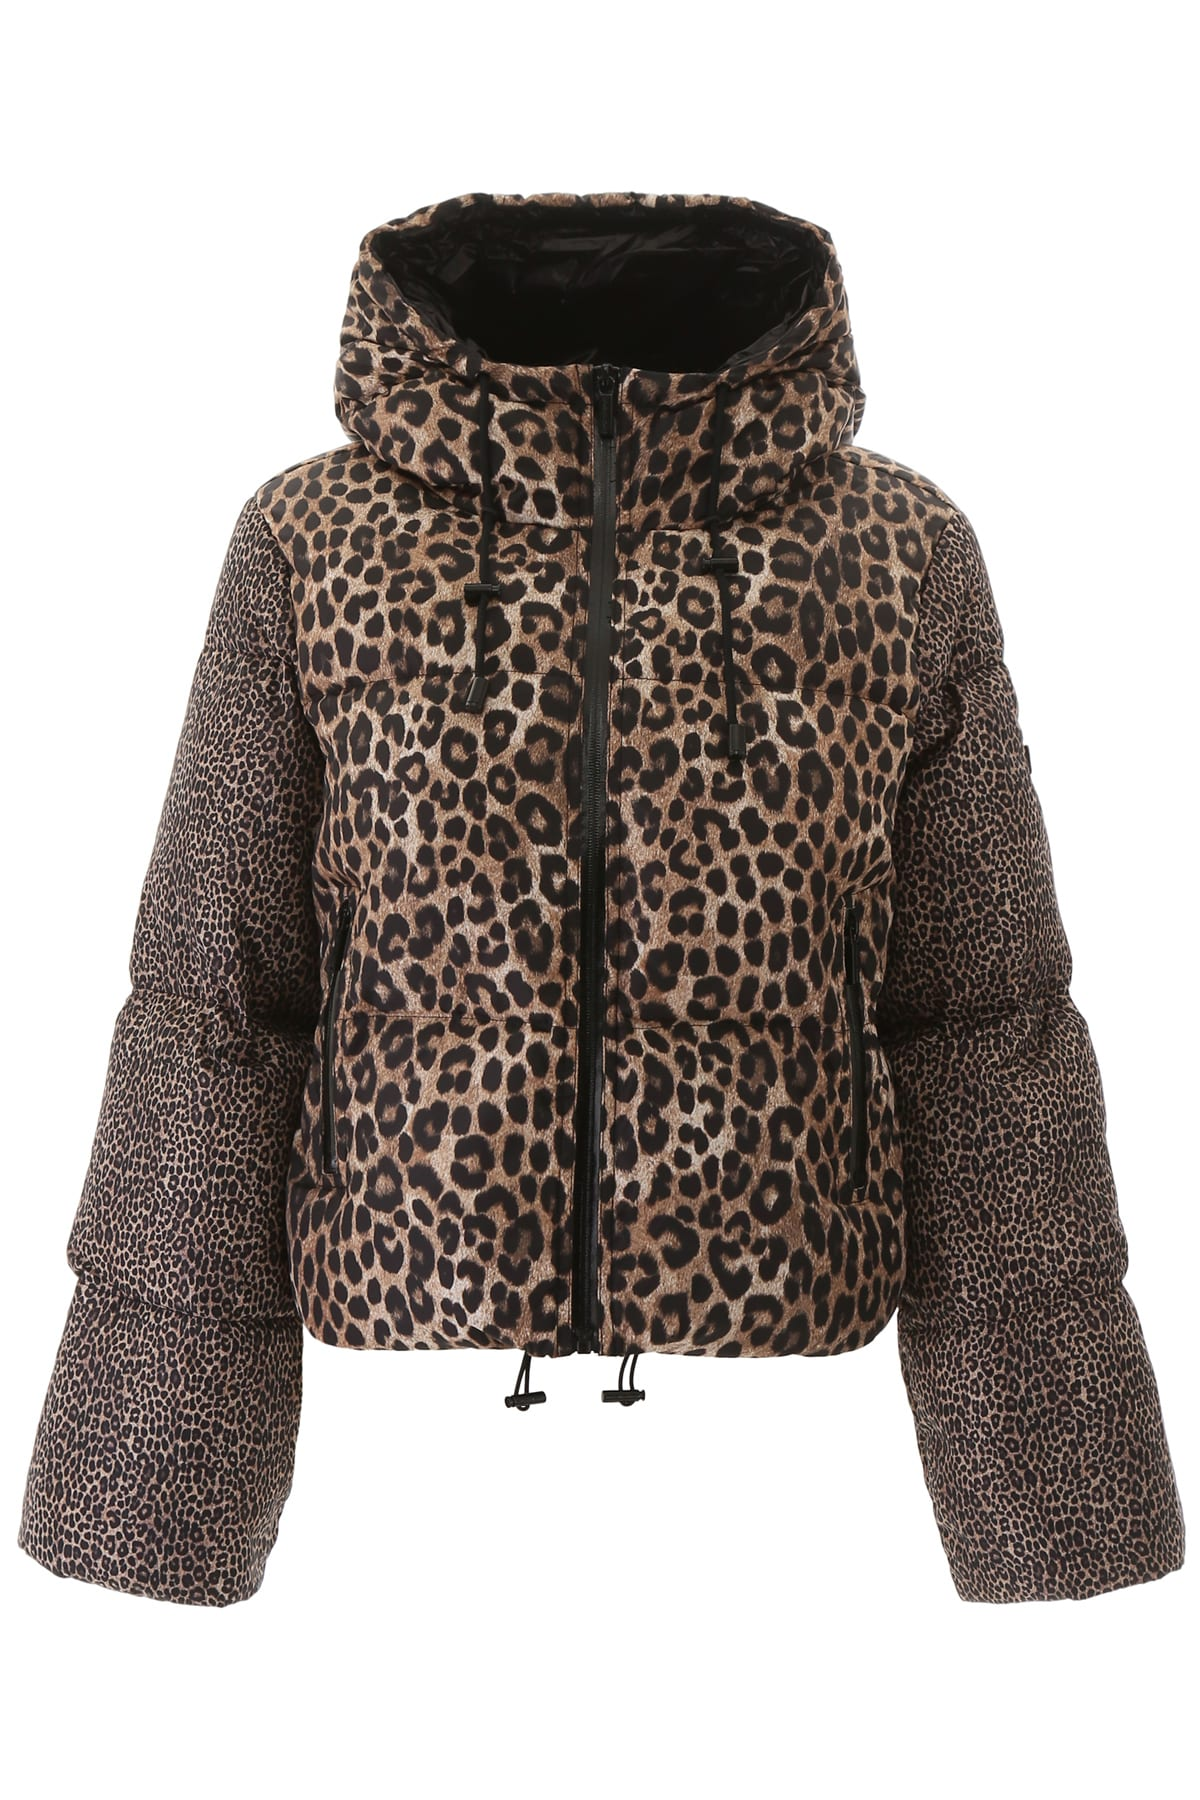 Photo of  MICHAEL Michael Kors Animalier Puffer Jacket- shop MICHAEL Michael Kors jackets online sales